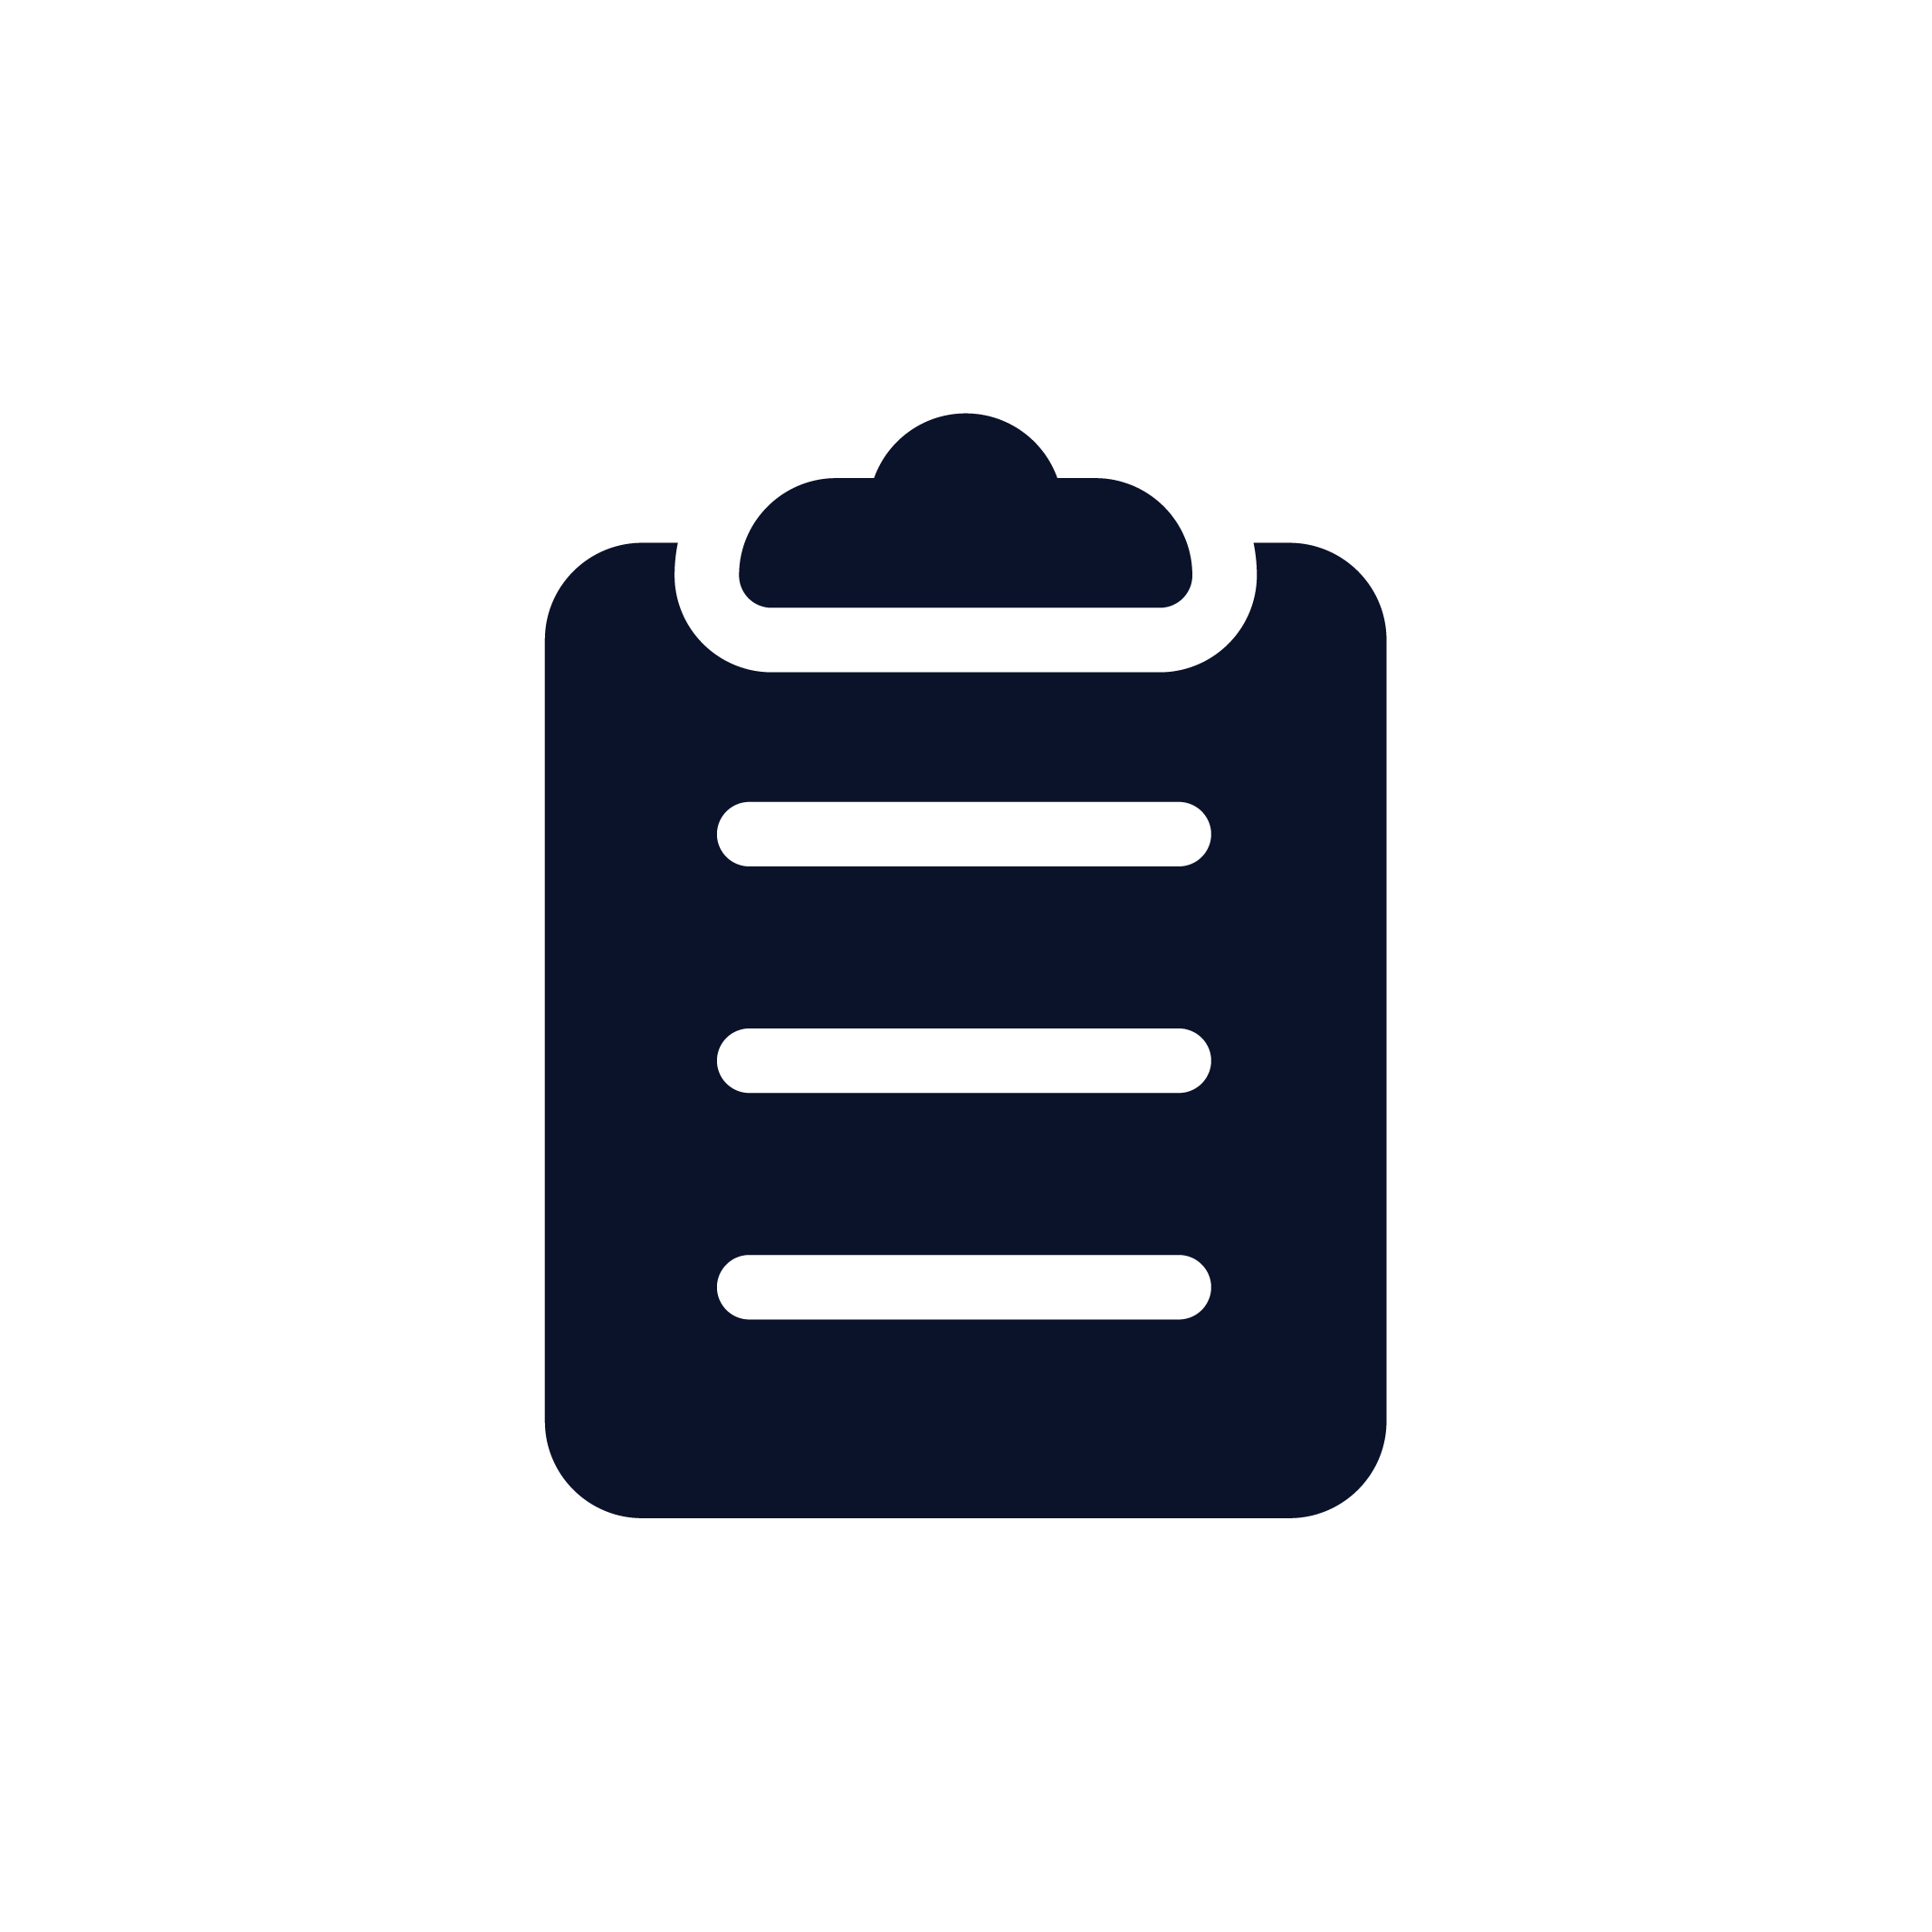 Hands-on product testing icon